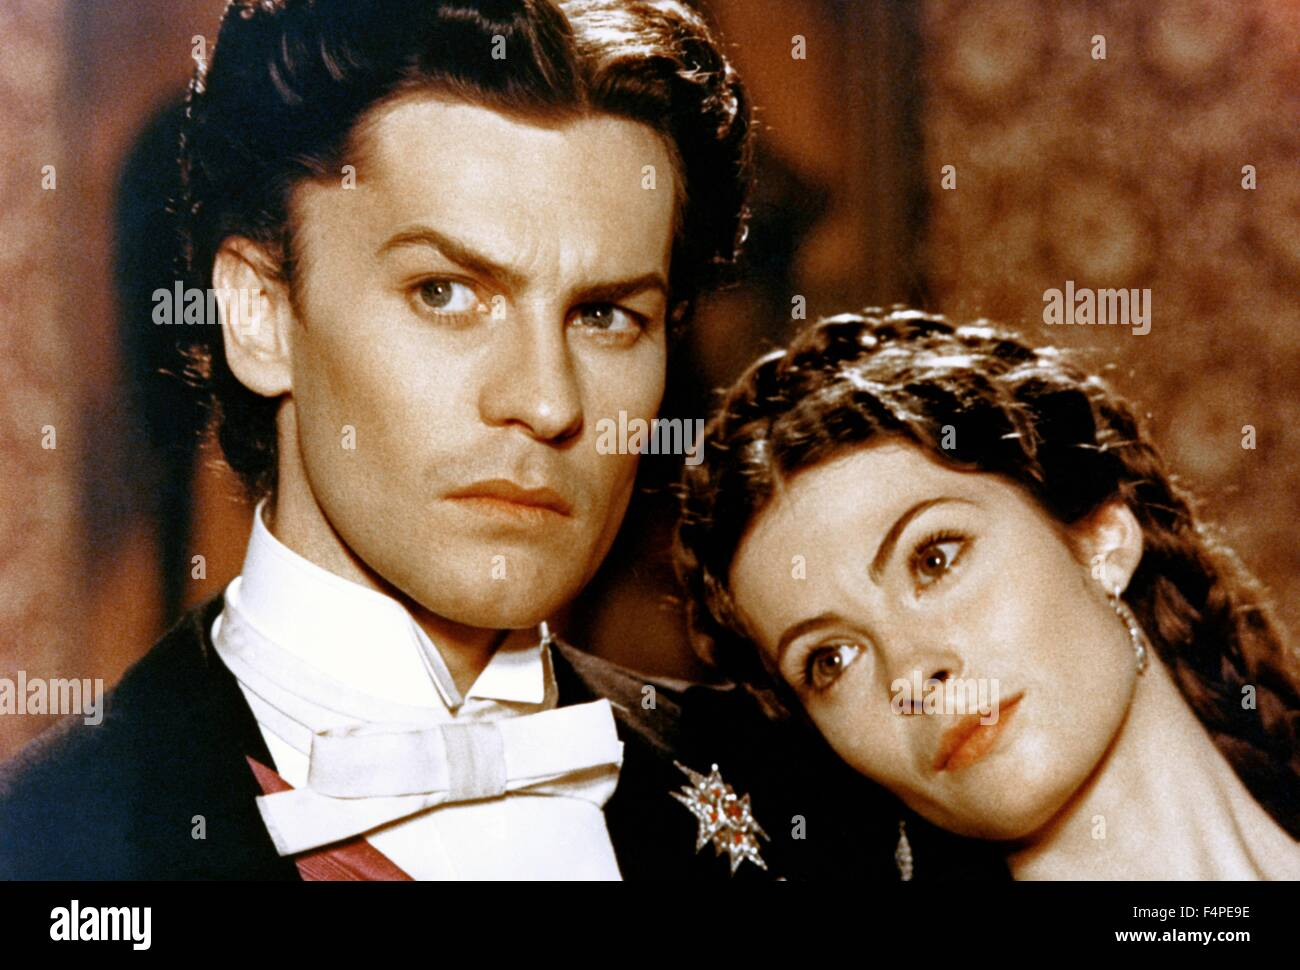 Helmut Berger and Sonia Petrova/ Ludwig : The Mad King of Bavaria / 1972 directed by Luchino Visconti - Stock Image